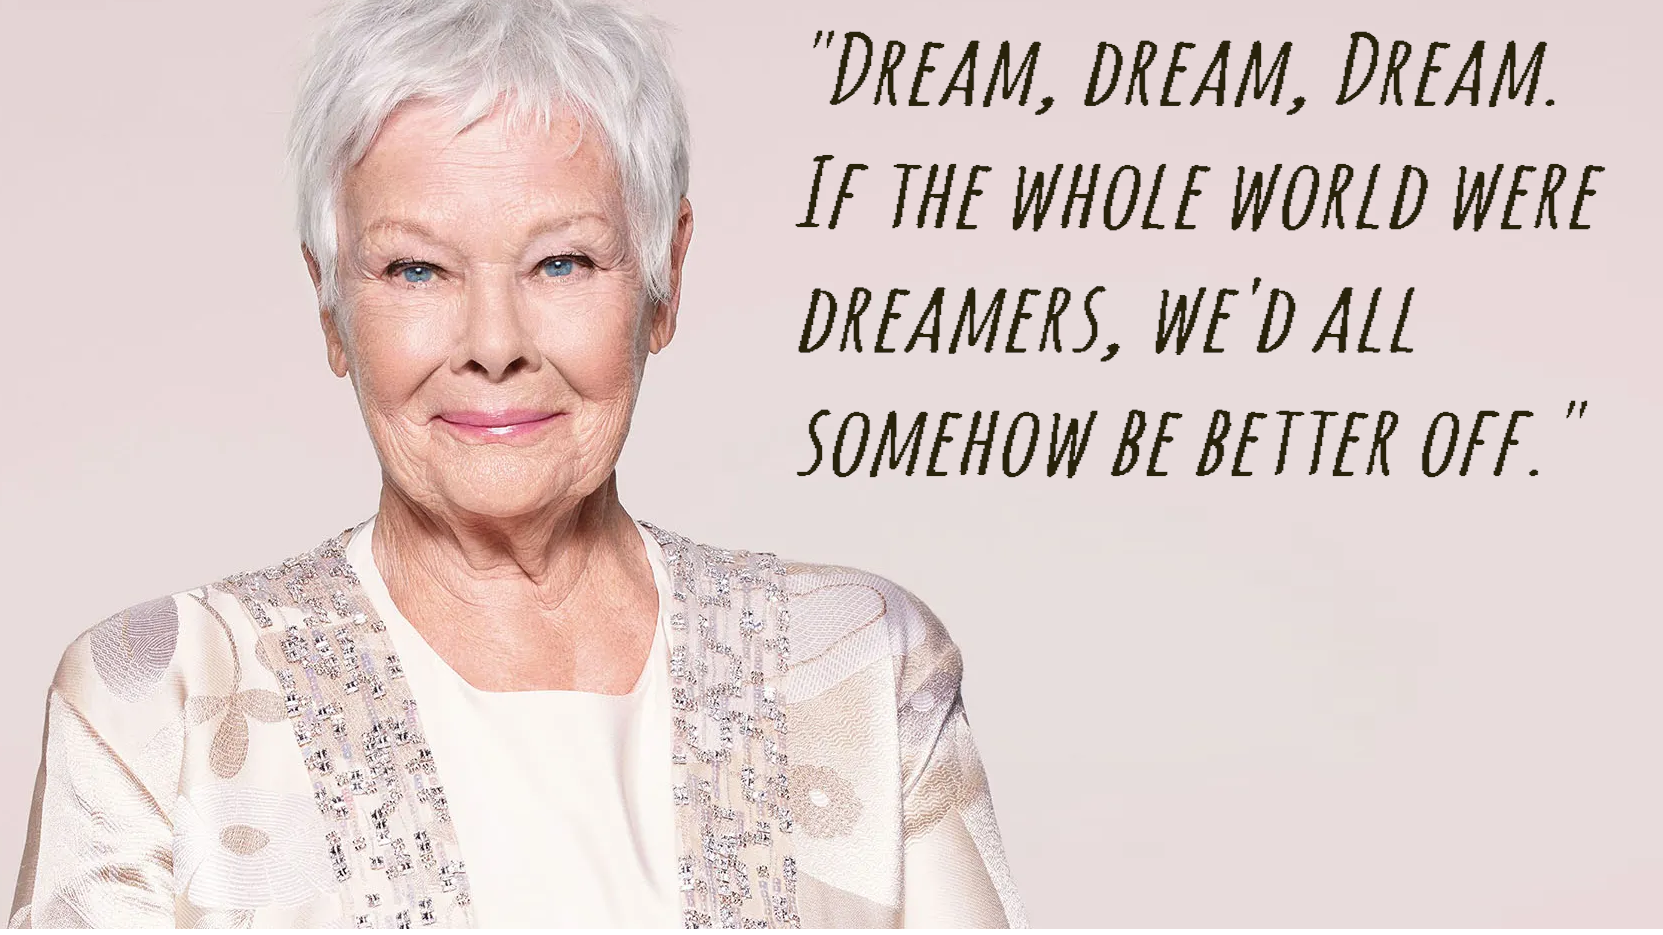 [Image] On dreaming